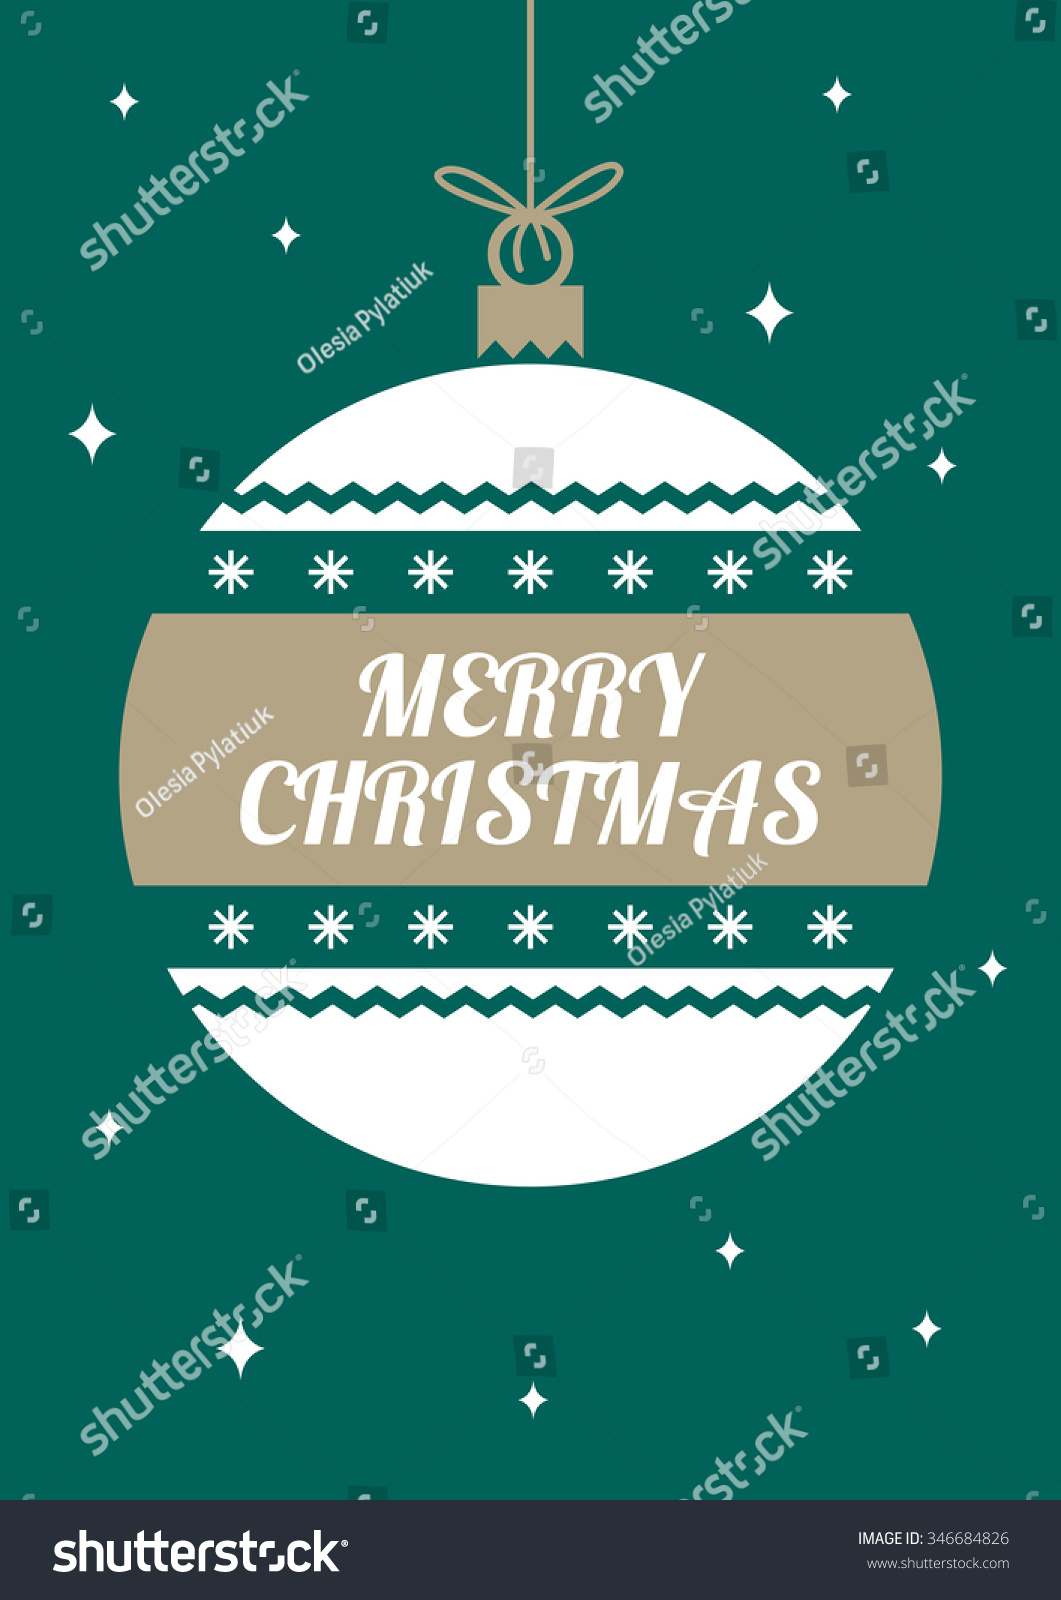 Merry Christmas Greeting Card Simple Holiday Card Stock Vector